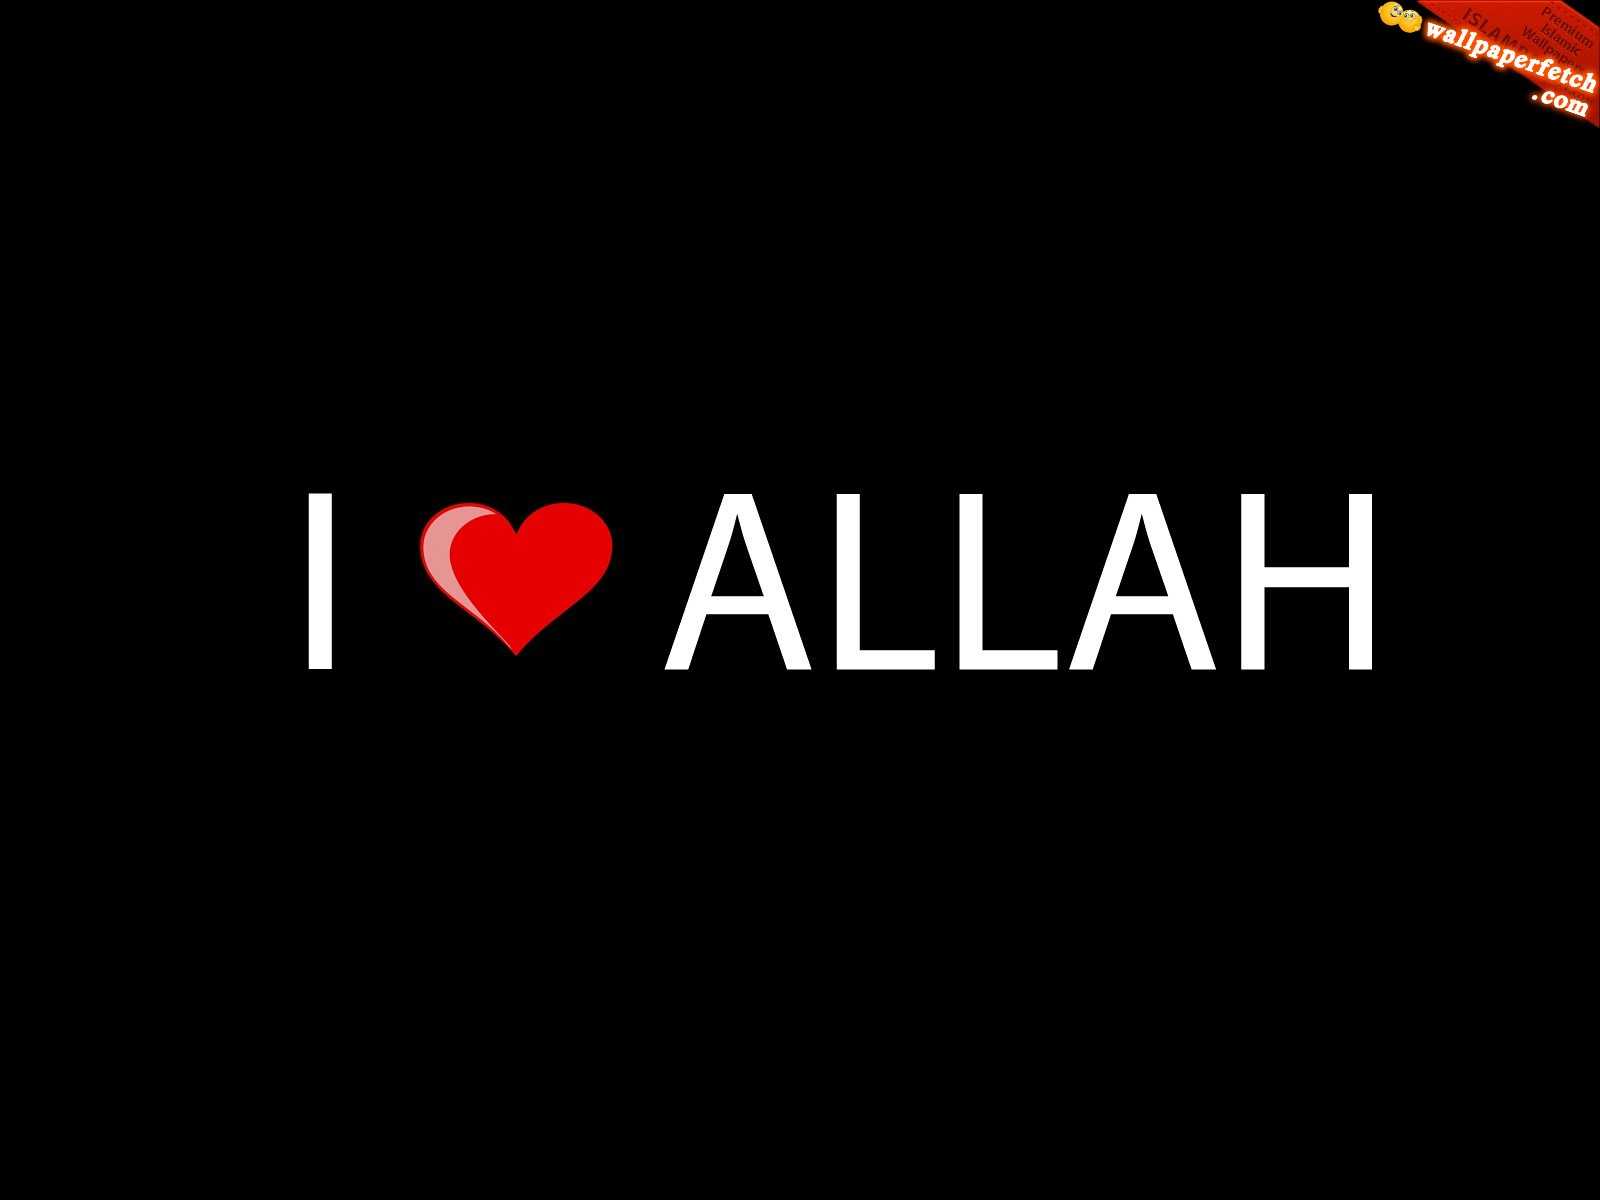 Wallpaper Love Name A : mashababko: Wallpaper I Love Allah